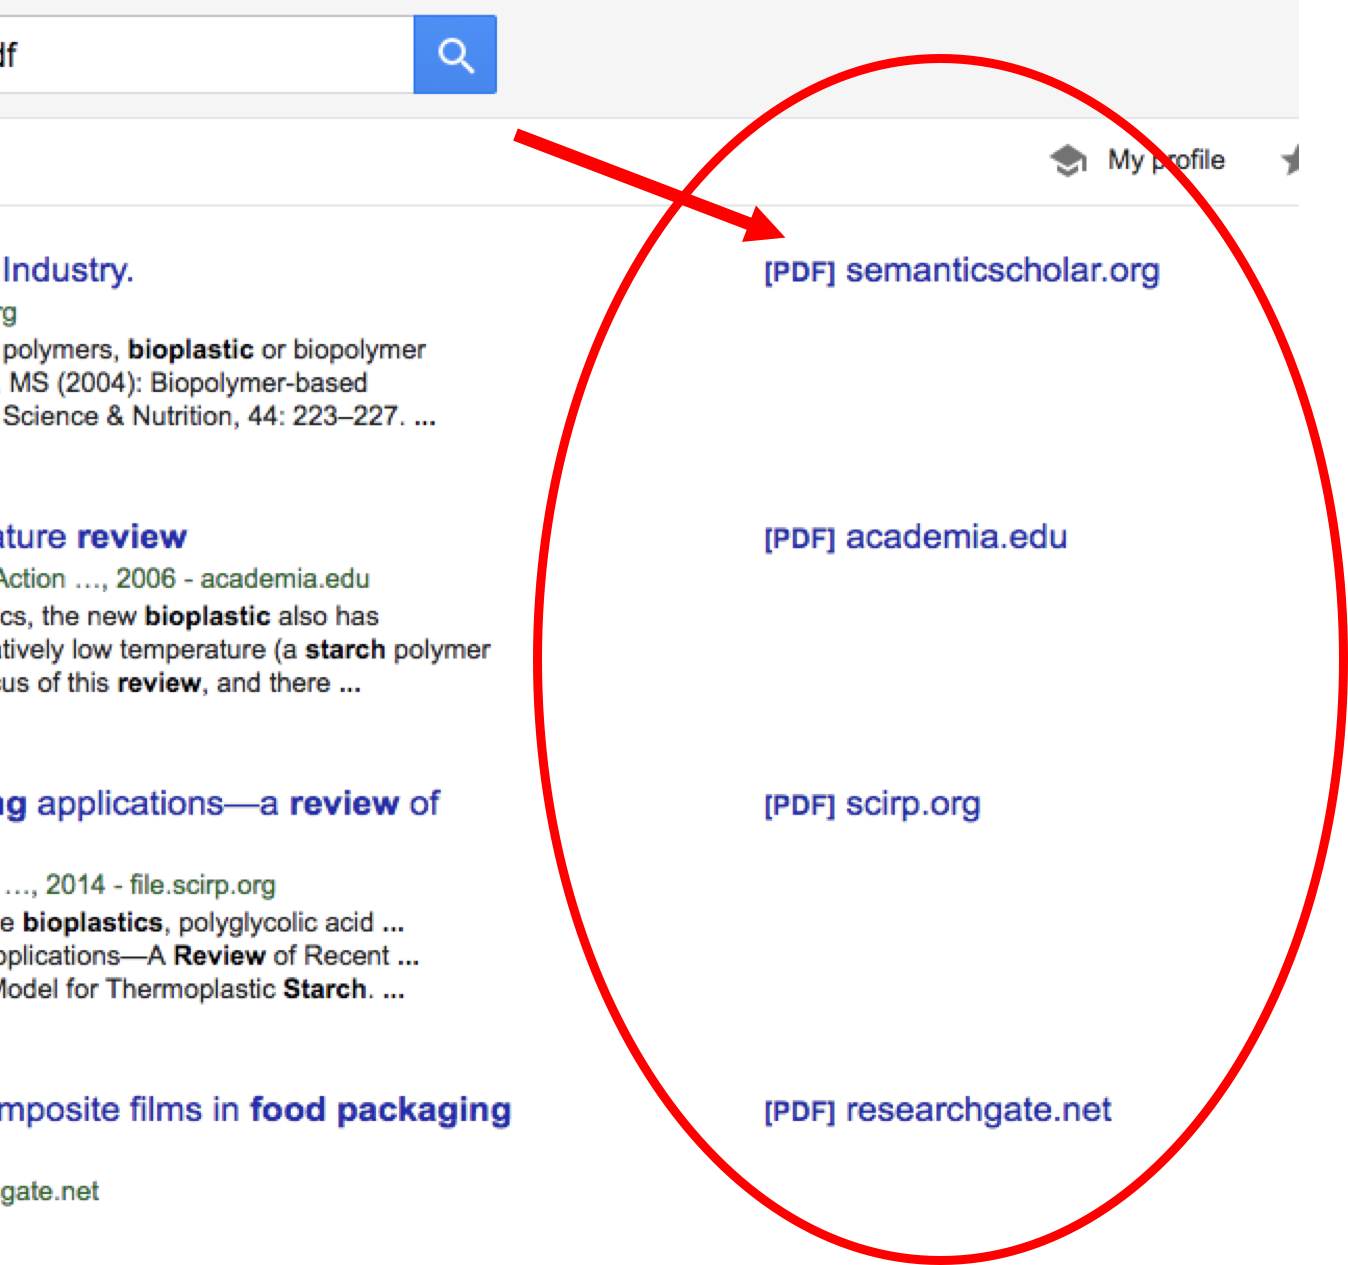 Google Schoolar Download Jurnal International Full Paper Gratis Berbagi Tak Pernah Rugi